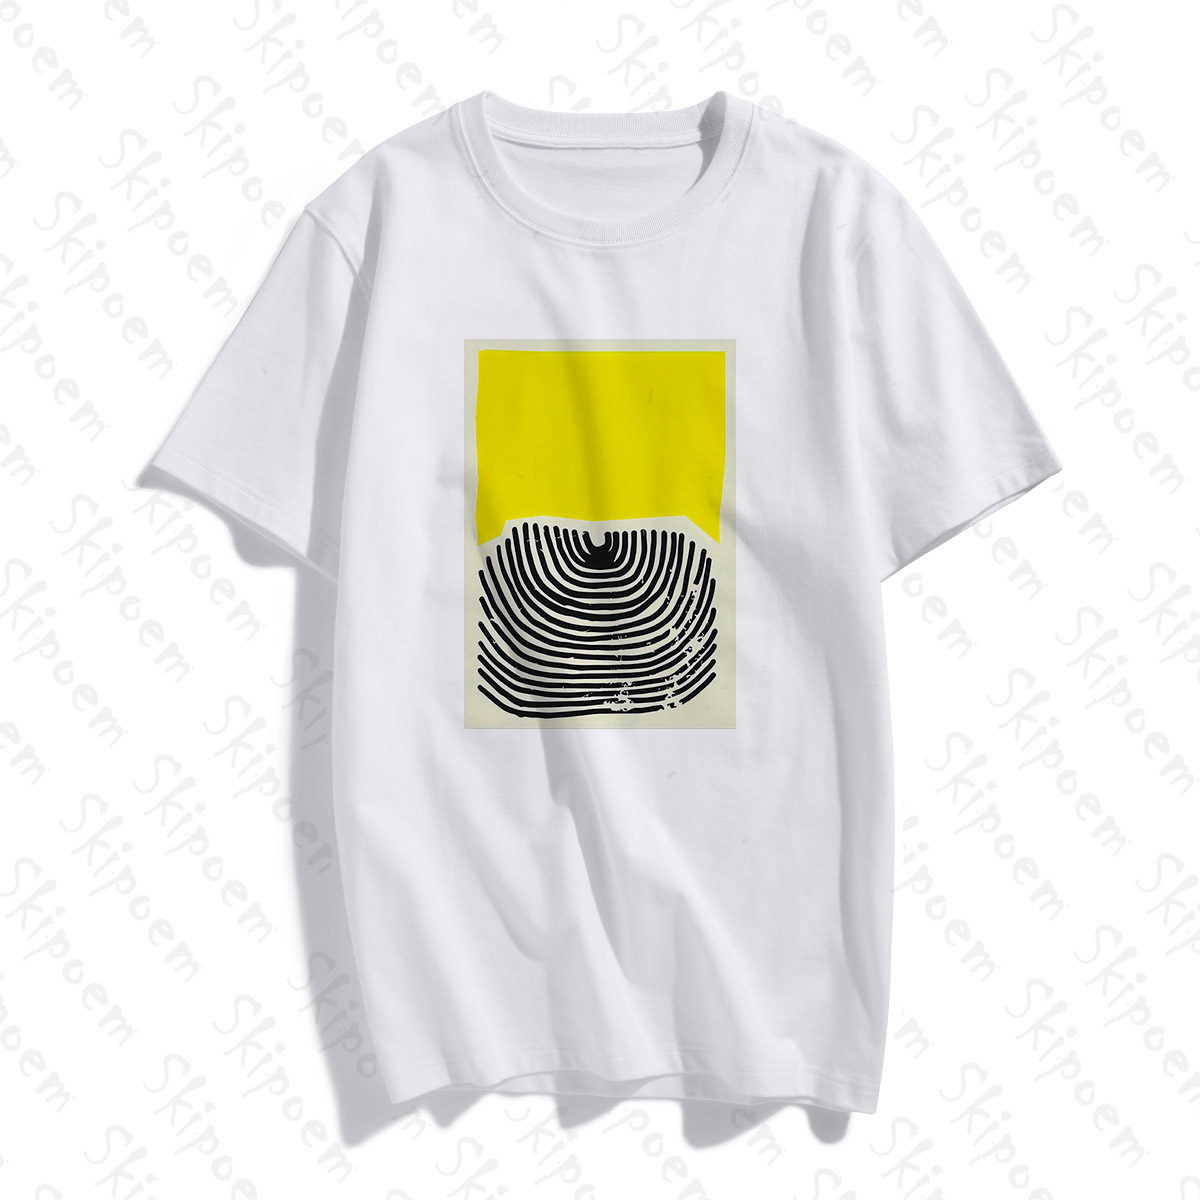 Colorful Modern Art Tshirt Women Kawaii Tumblr Korean Style Aesthetic Plus Size Cotton Short Sleeve Tee Shirt Femme Streetwear